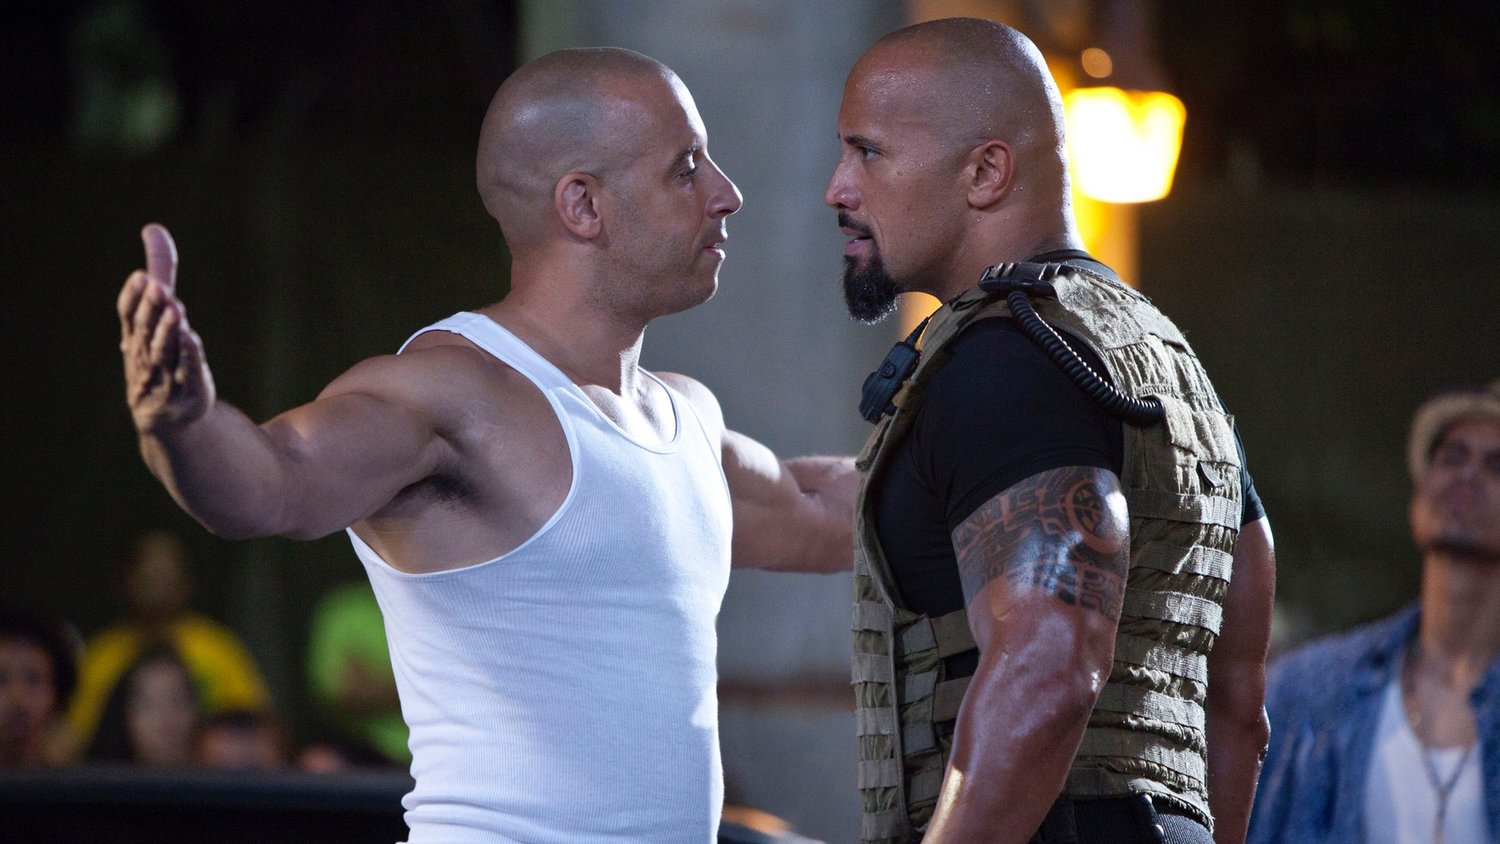 Vin Diesel Was Furious About a Secret Scene Shot For FATE OF THE FURIOUS and it Was Cut From the Film